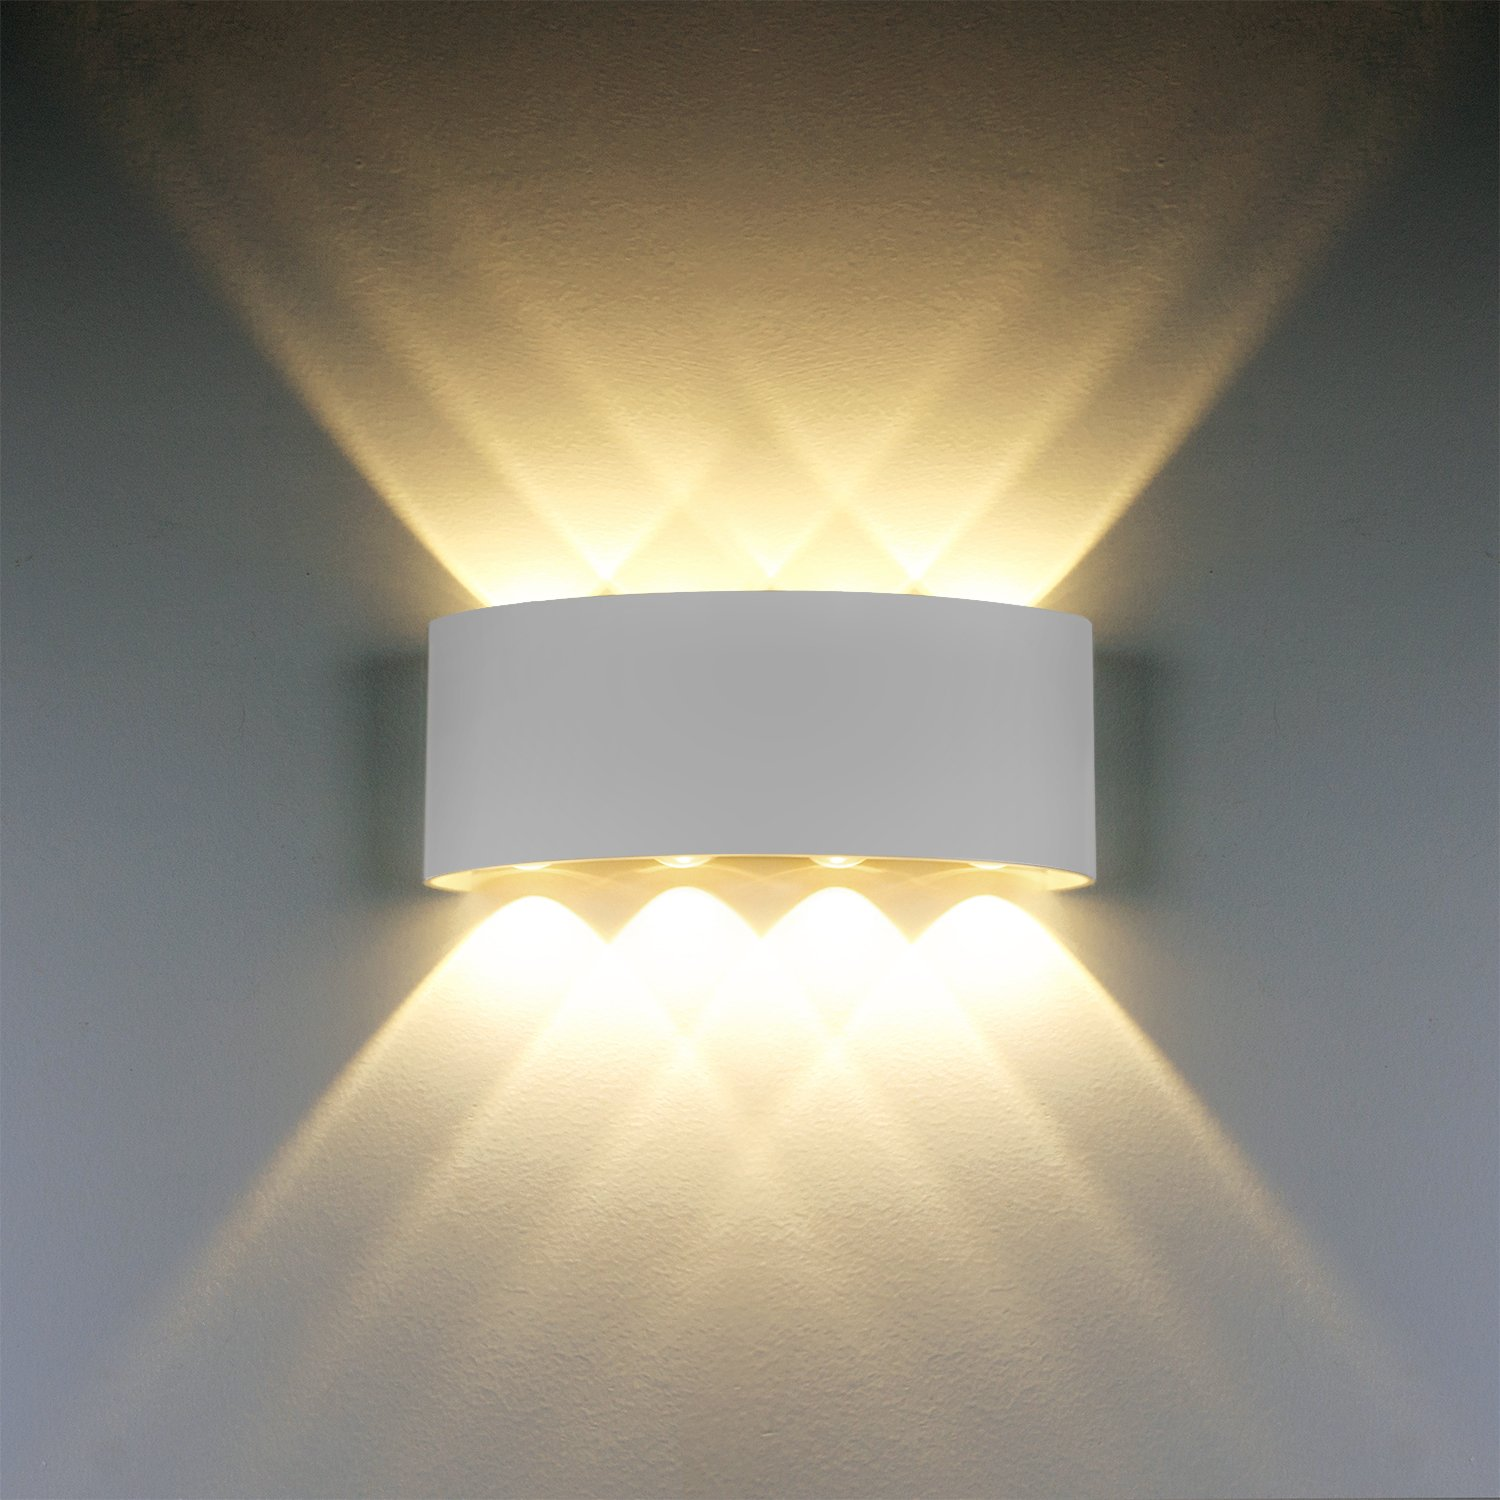 Best lampade da parete moderne w led applique da parete in for Luci a led per interni casa